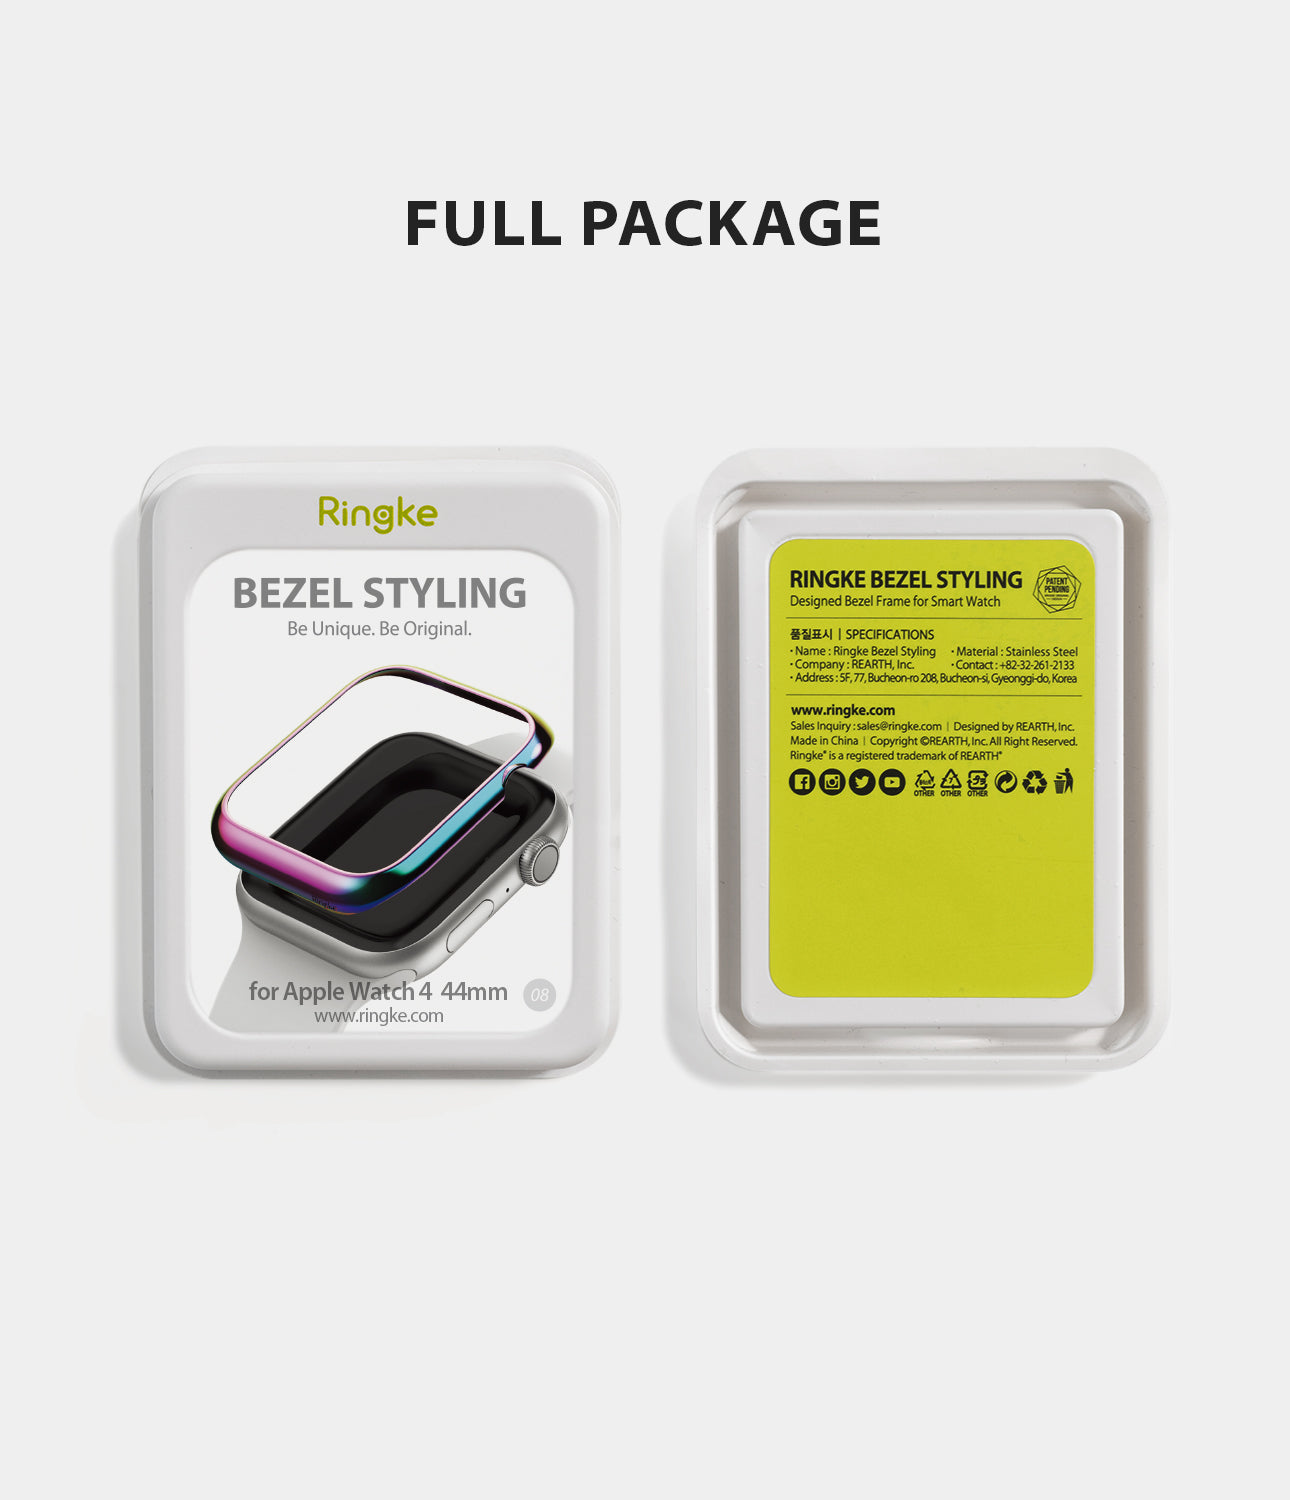 apple watch 4 44mm case ringke bezel styling stainless steel frame cover 44-08 full package